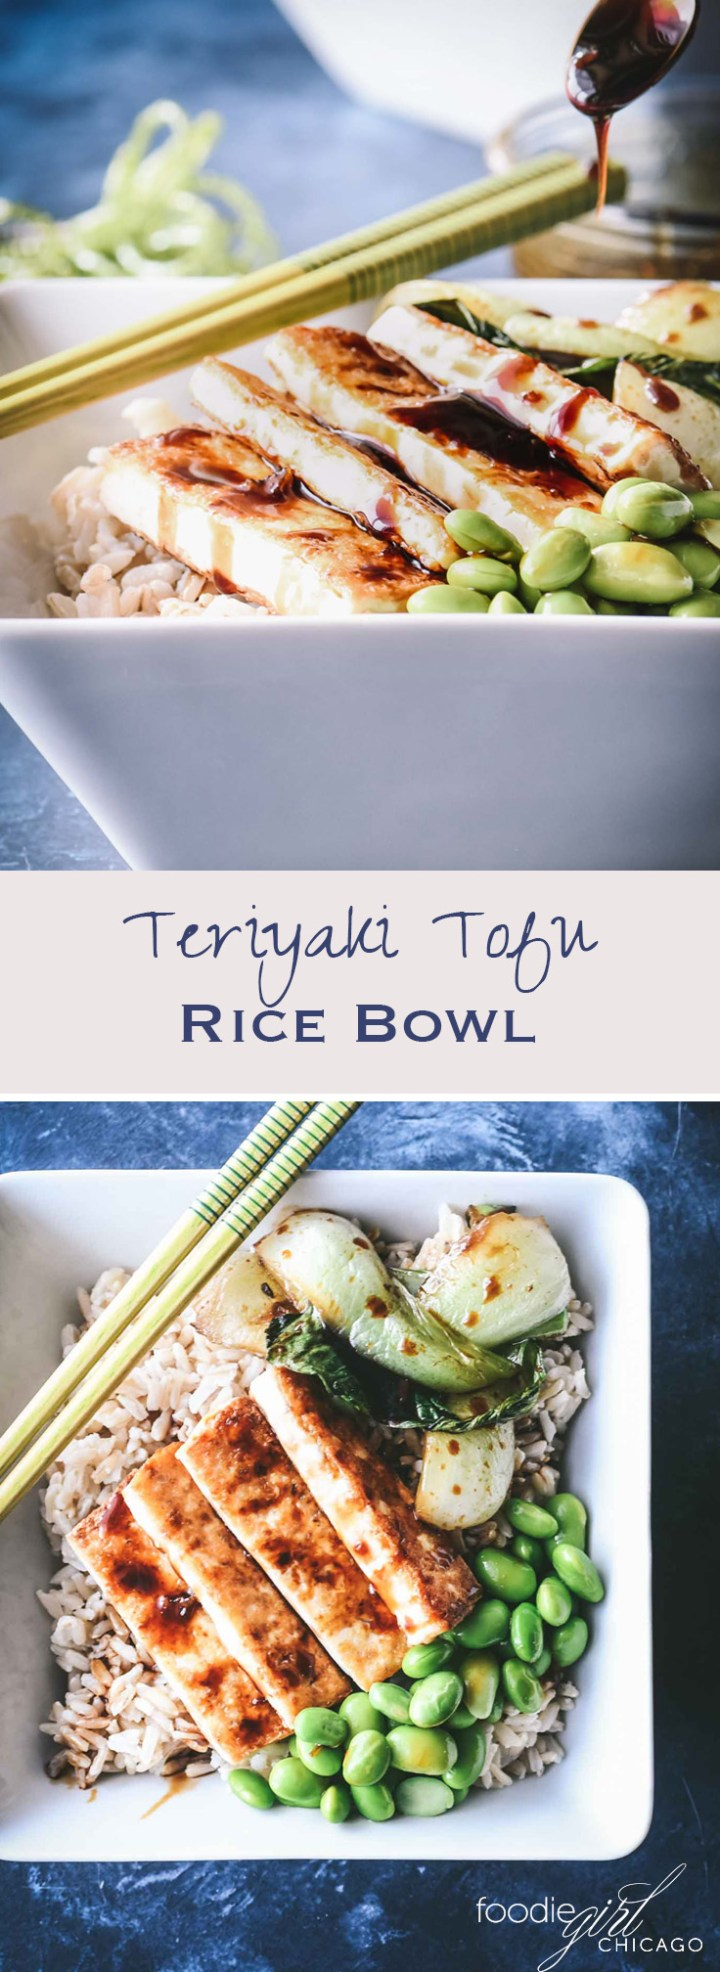 If you are looking for a great healthy dish for a tasty weeknight meal, look no further than this Crispy Tofu Rice Bowl topped with bok choy and edamame then drizzled with a thick teriyaki glaze!